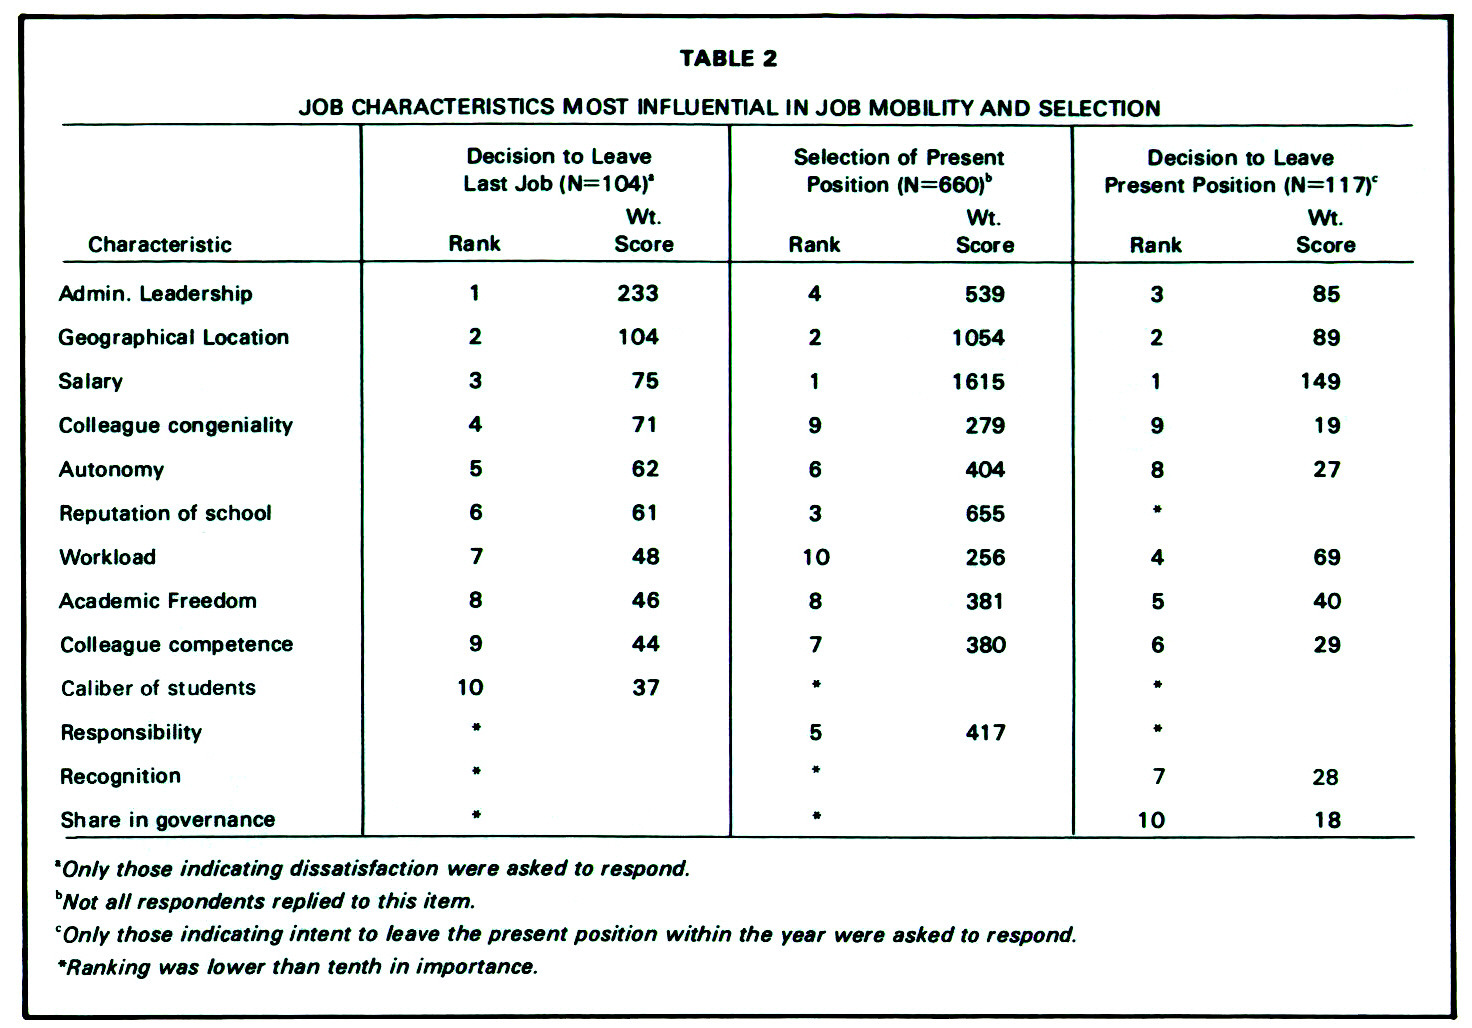 TABLE 2JOB CHARACTERISTICS MOST INFLUENTIAL IN JOB MOBILITY AND SELECTION